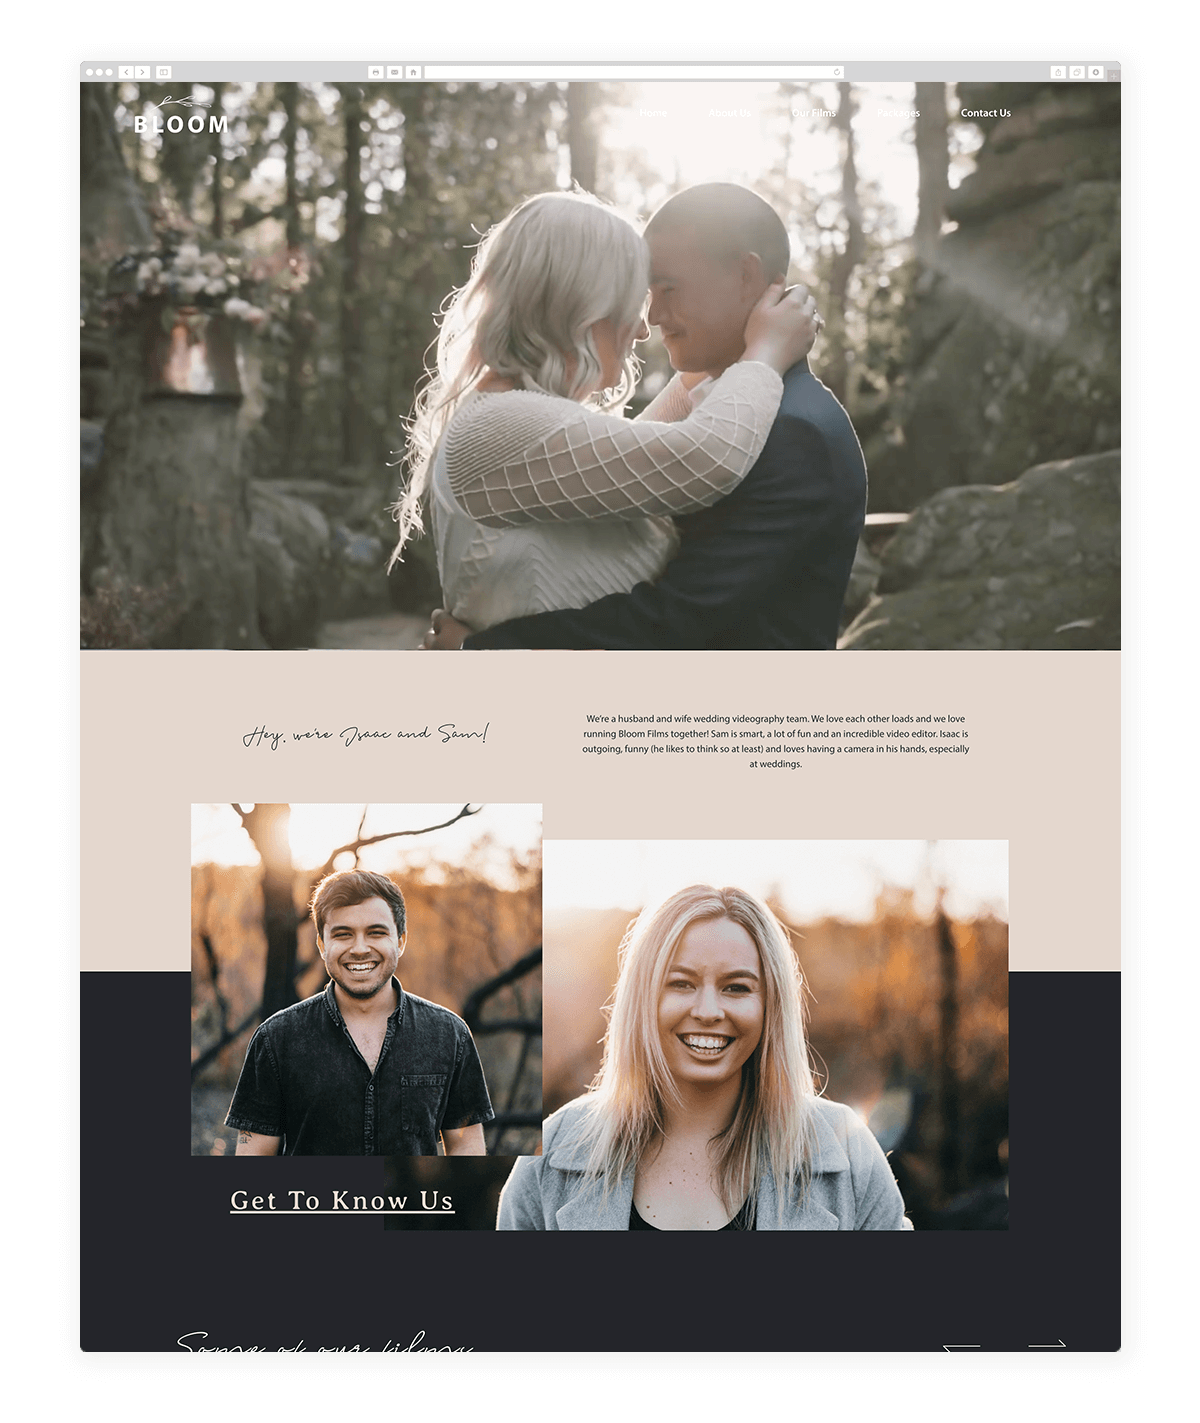 Bloom Films, wedding videographers, website design based on Leon, by Flothemes